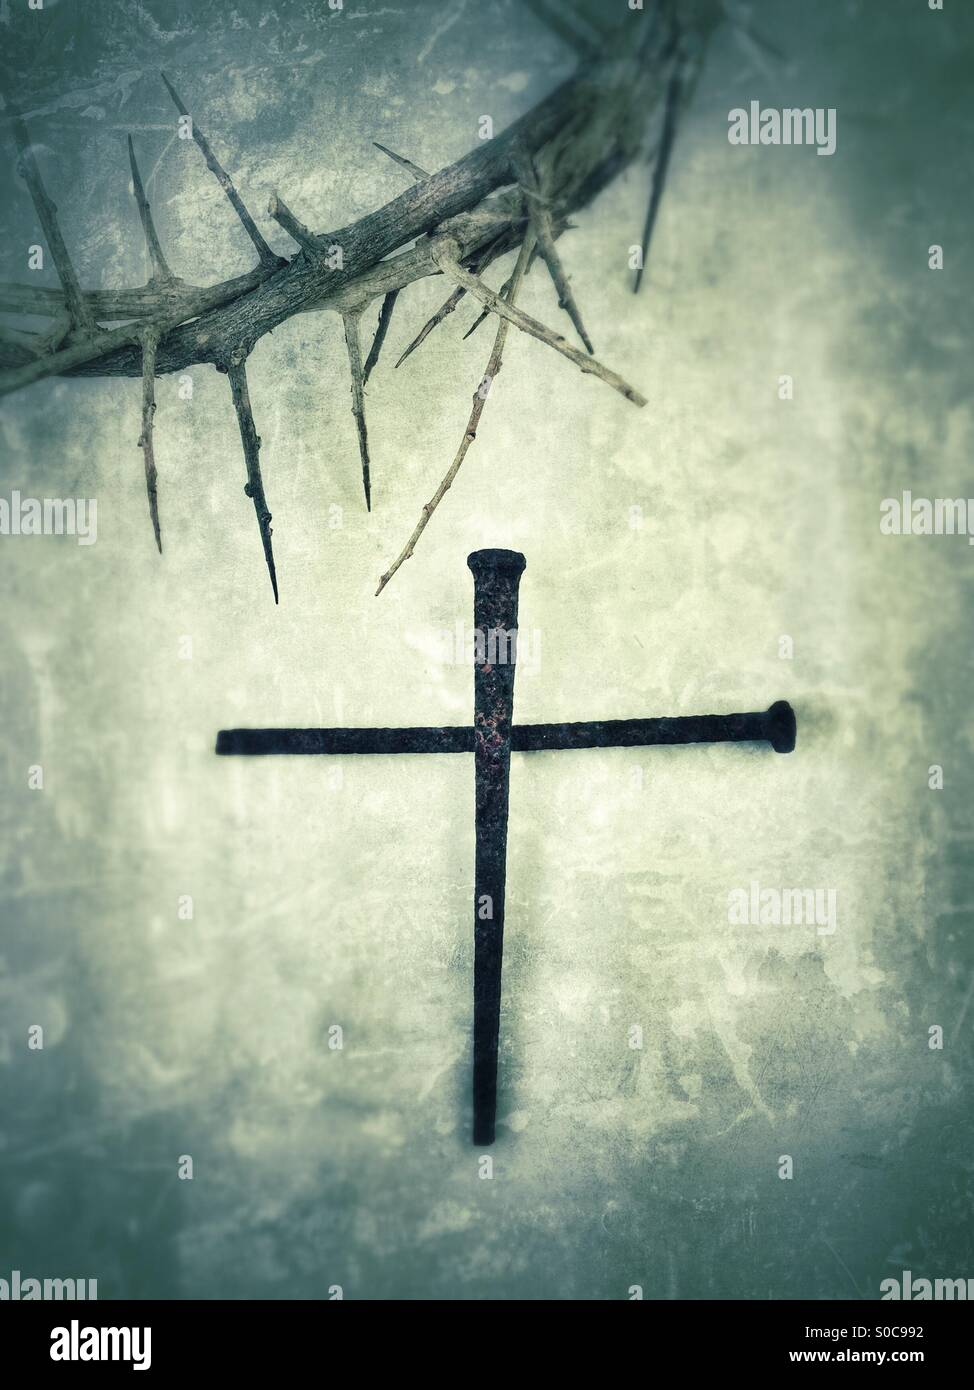 Crown of thorns with nails forming a cross. - Stock Image